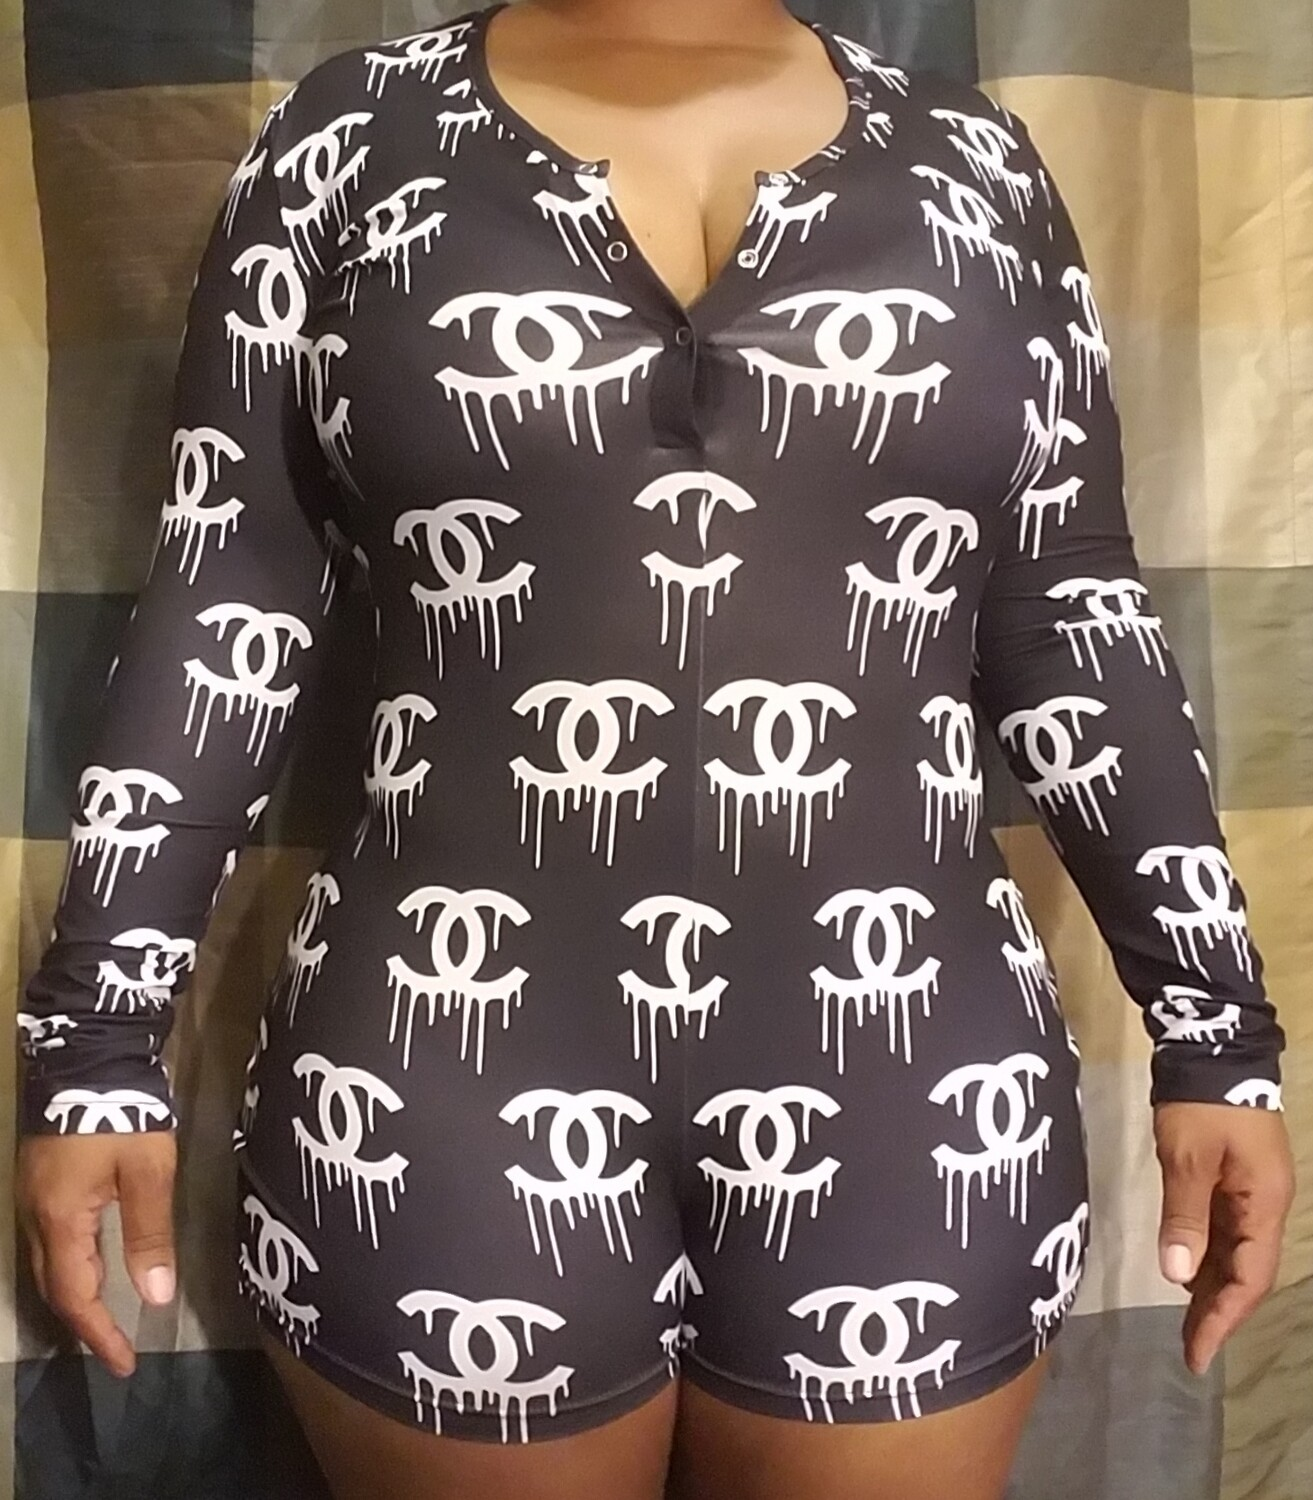 Women's Long Sleeve Shorts Playsuit, Casual, Party, Onesie Pajama Wear